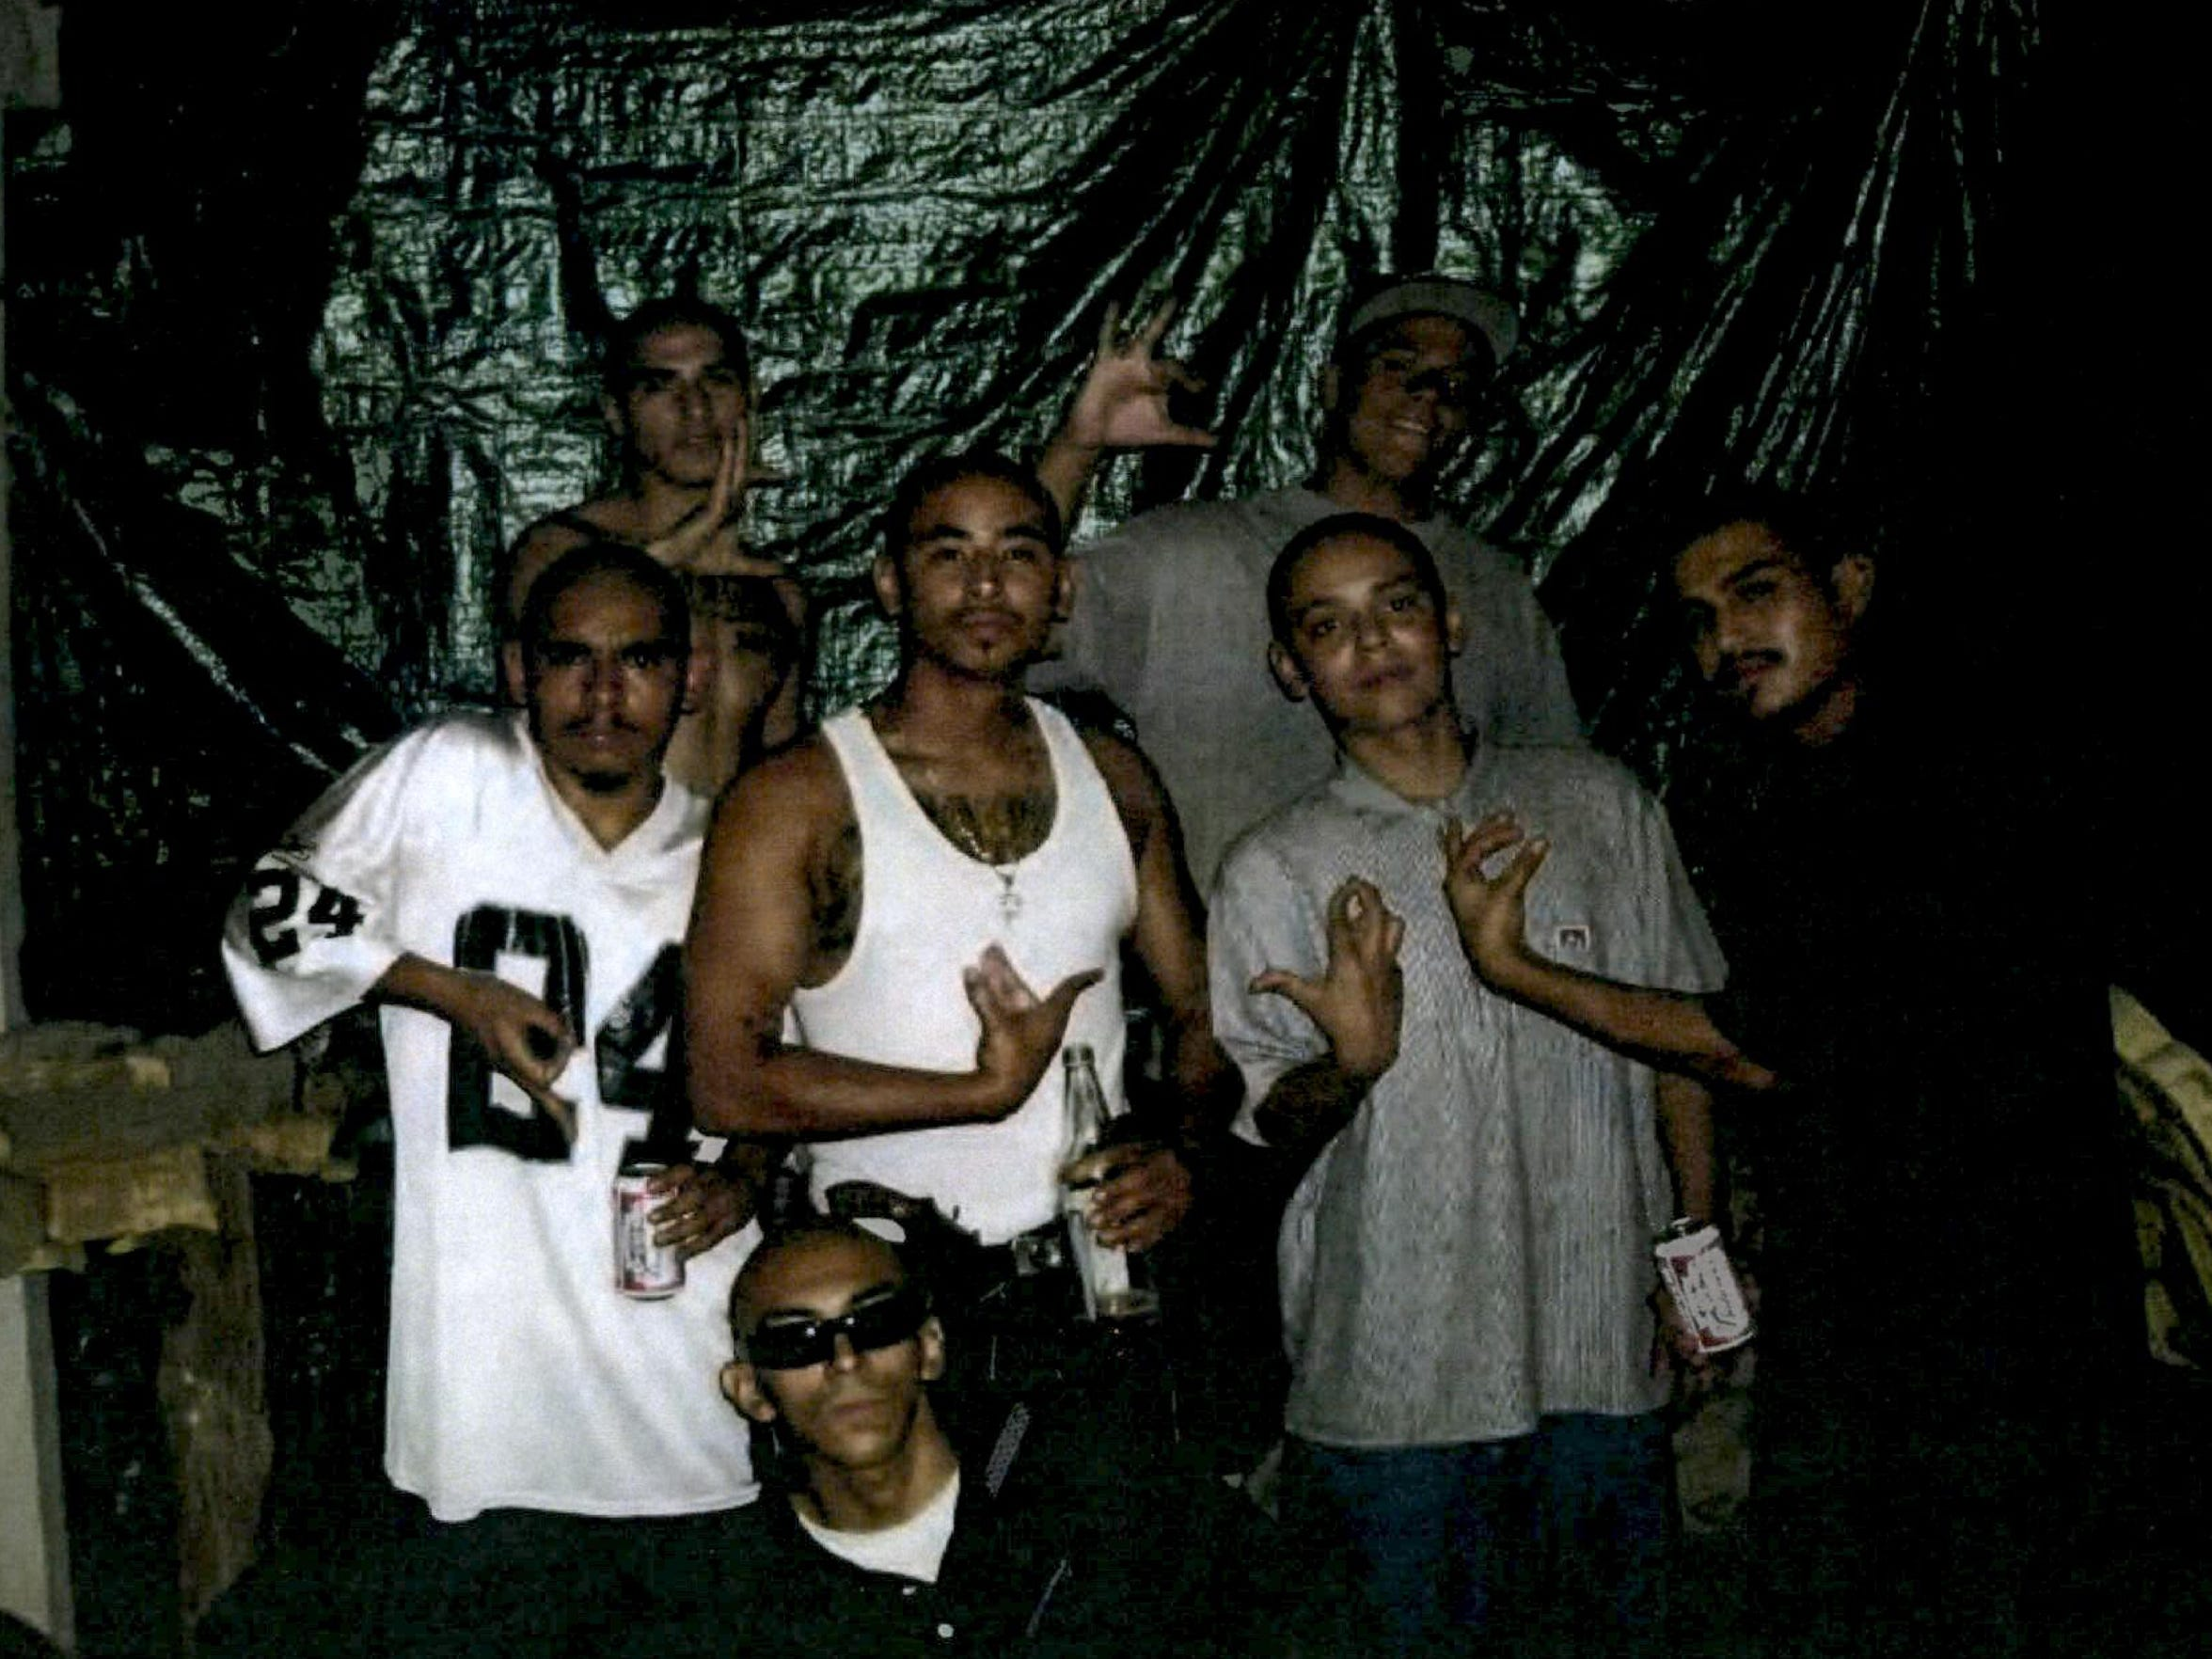 A group of unidentified men flash gang signs in a photograph